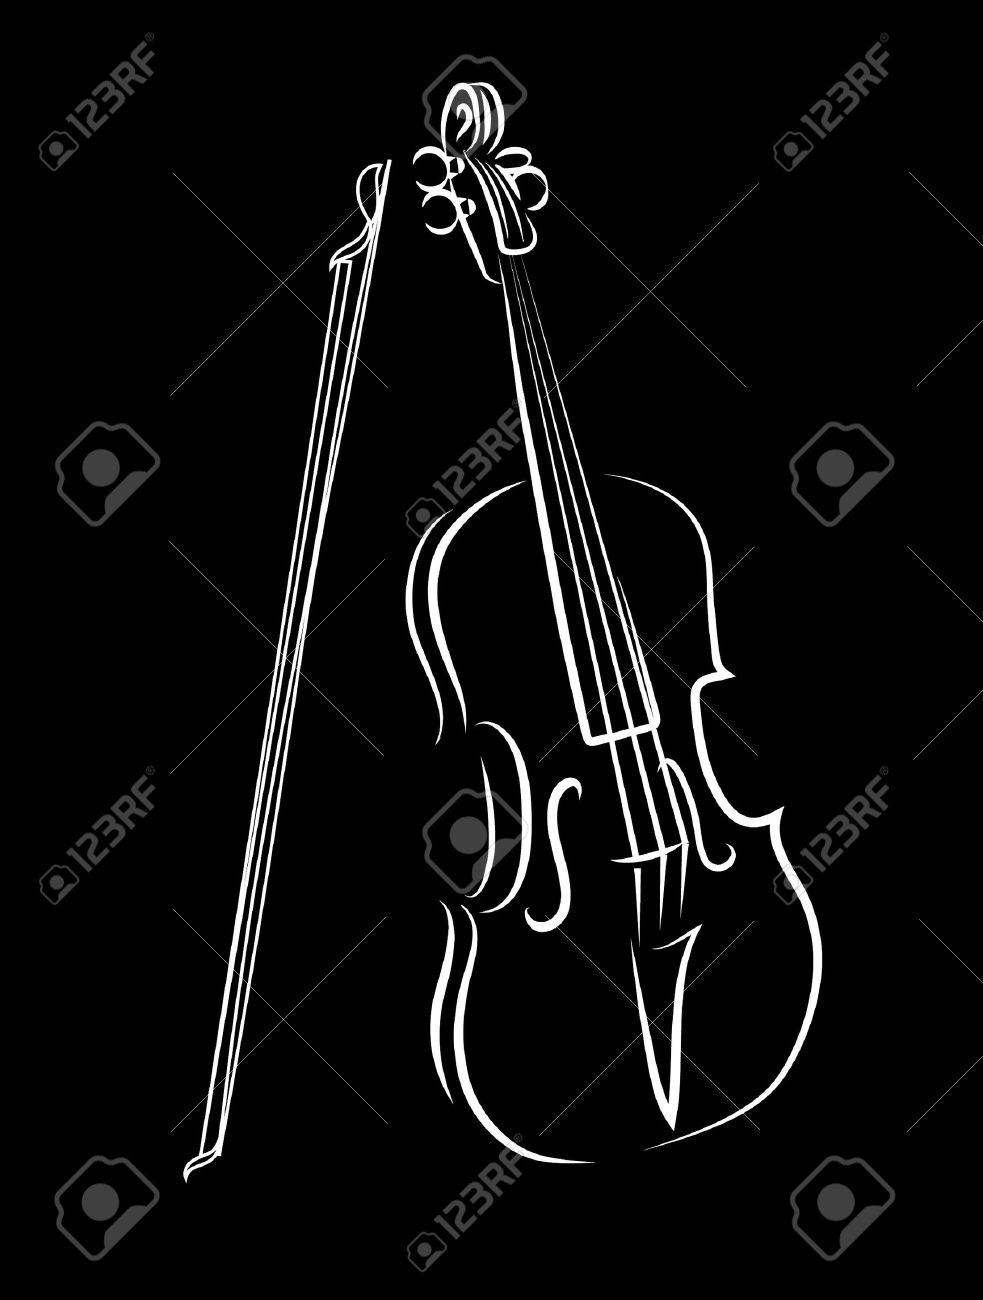 Violin stock vector 16007641